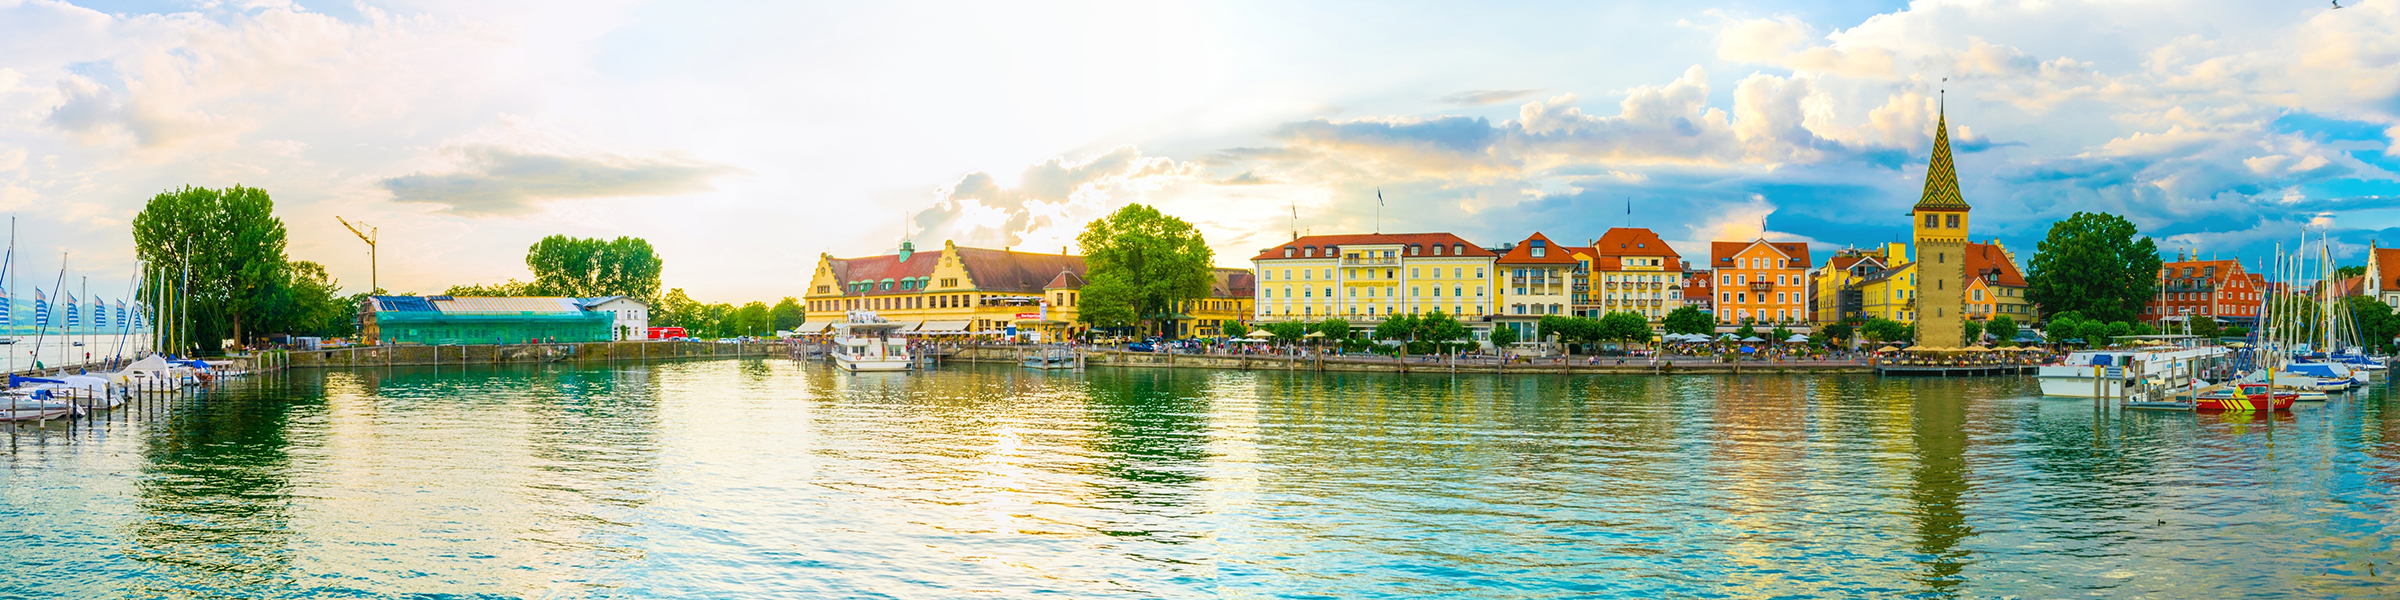 Germany Lake Constance Lindau